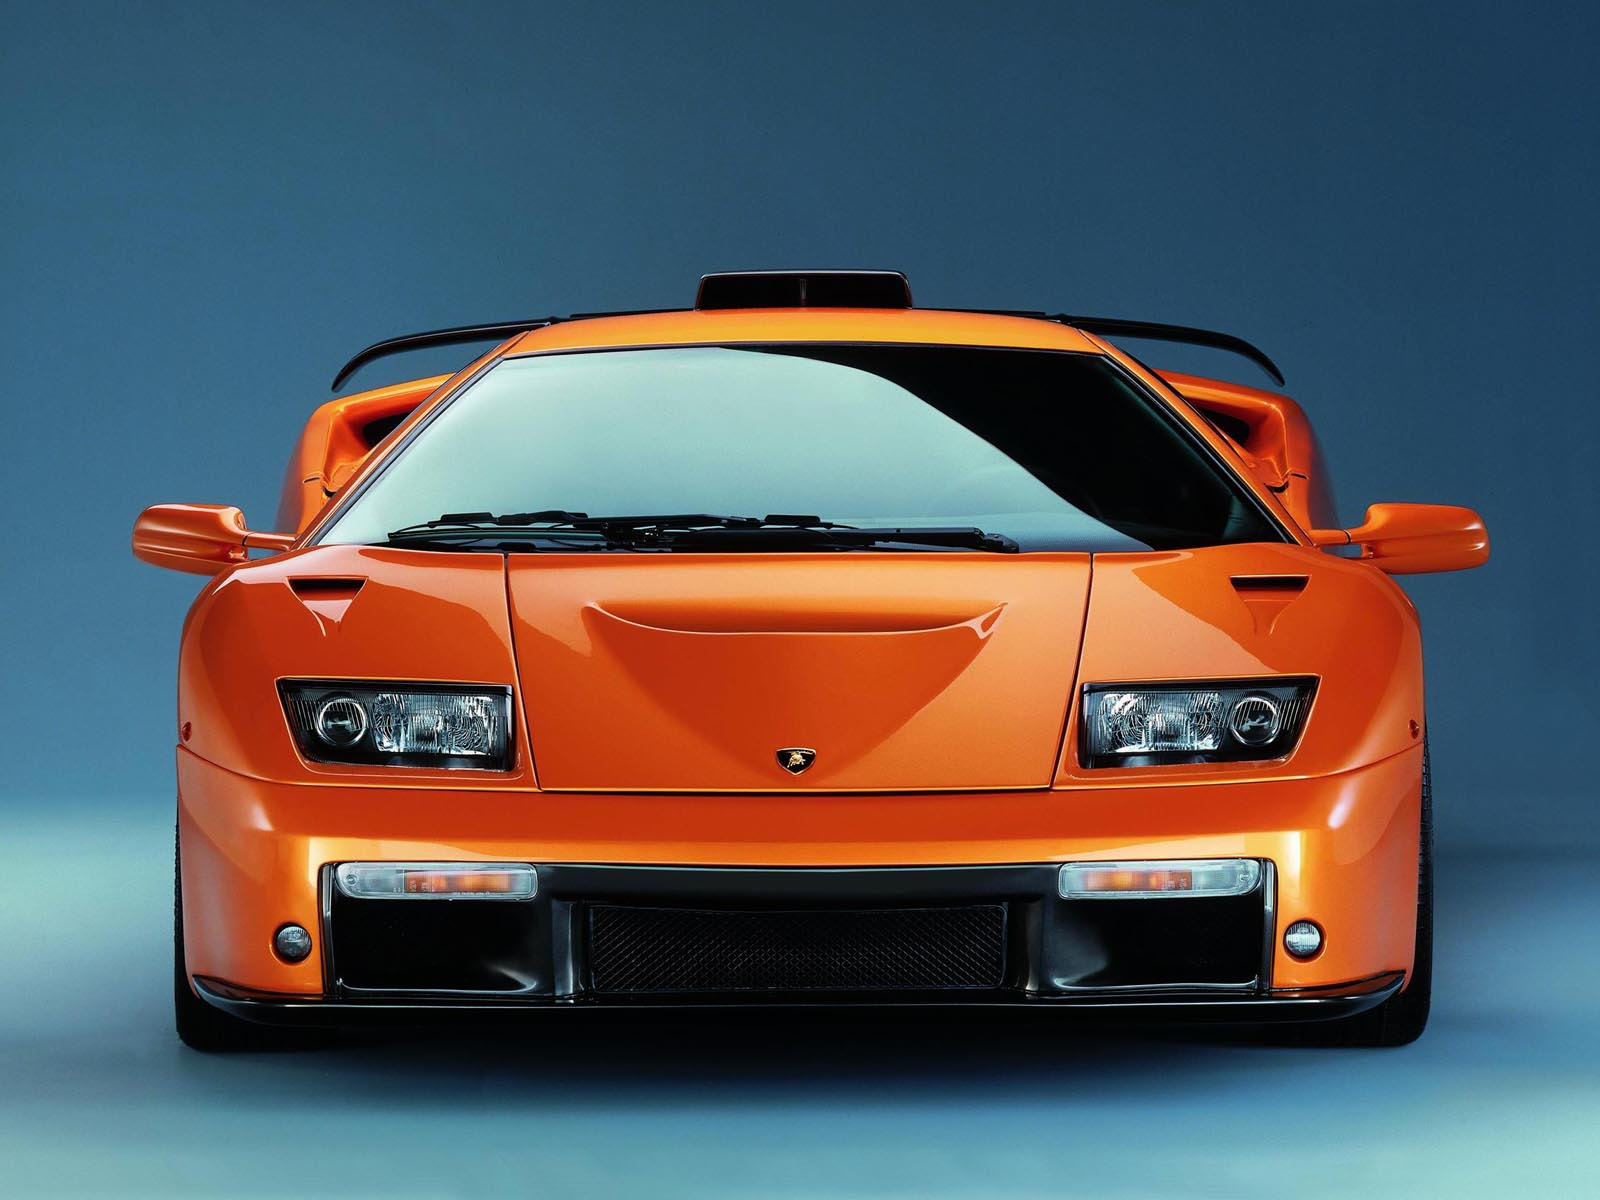 Lamborghini Diablo 2012 Car Wallpaper Gallery Lamborghini Lover